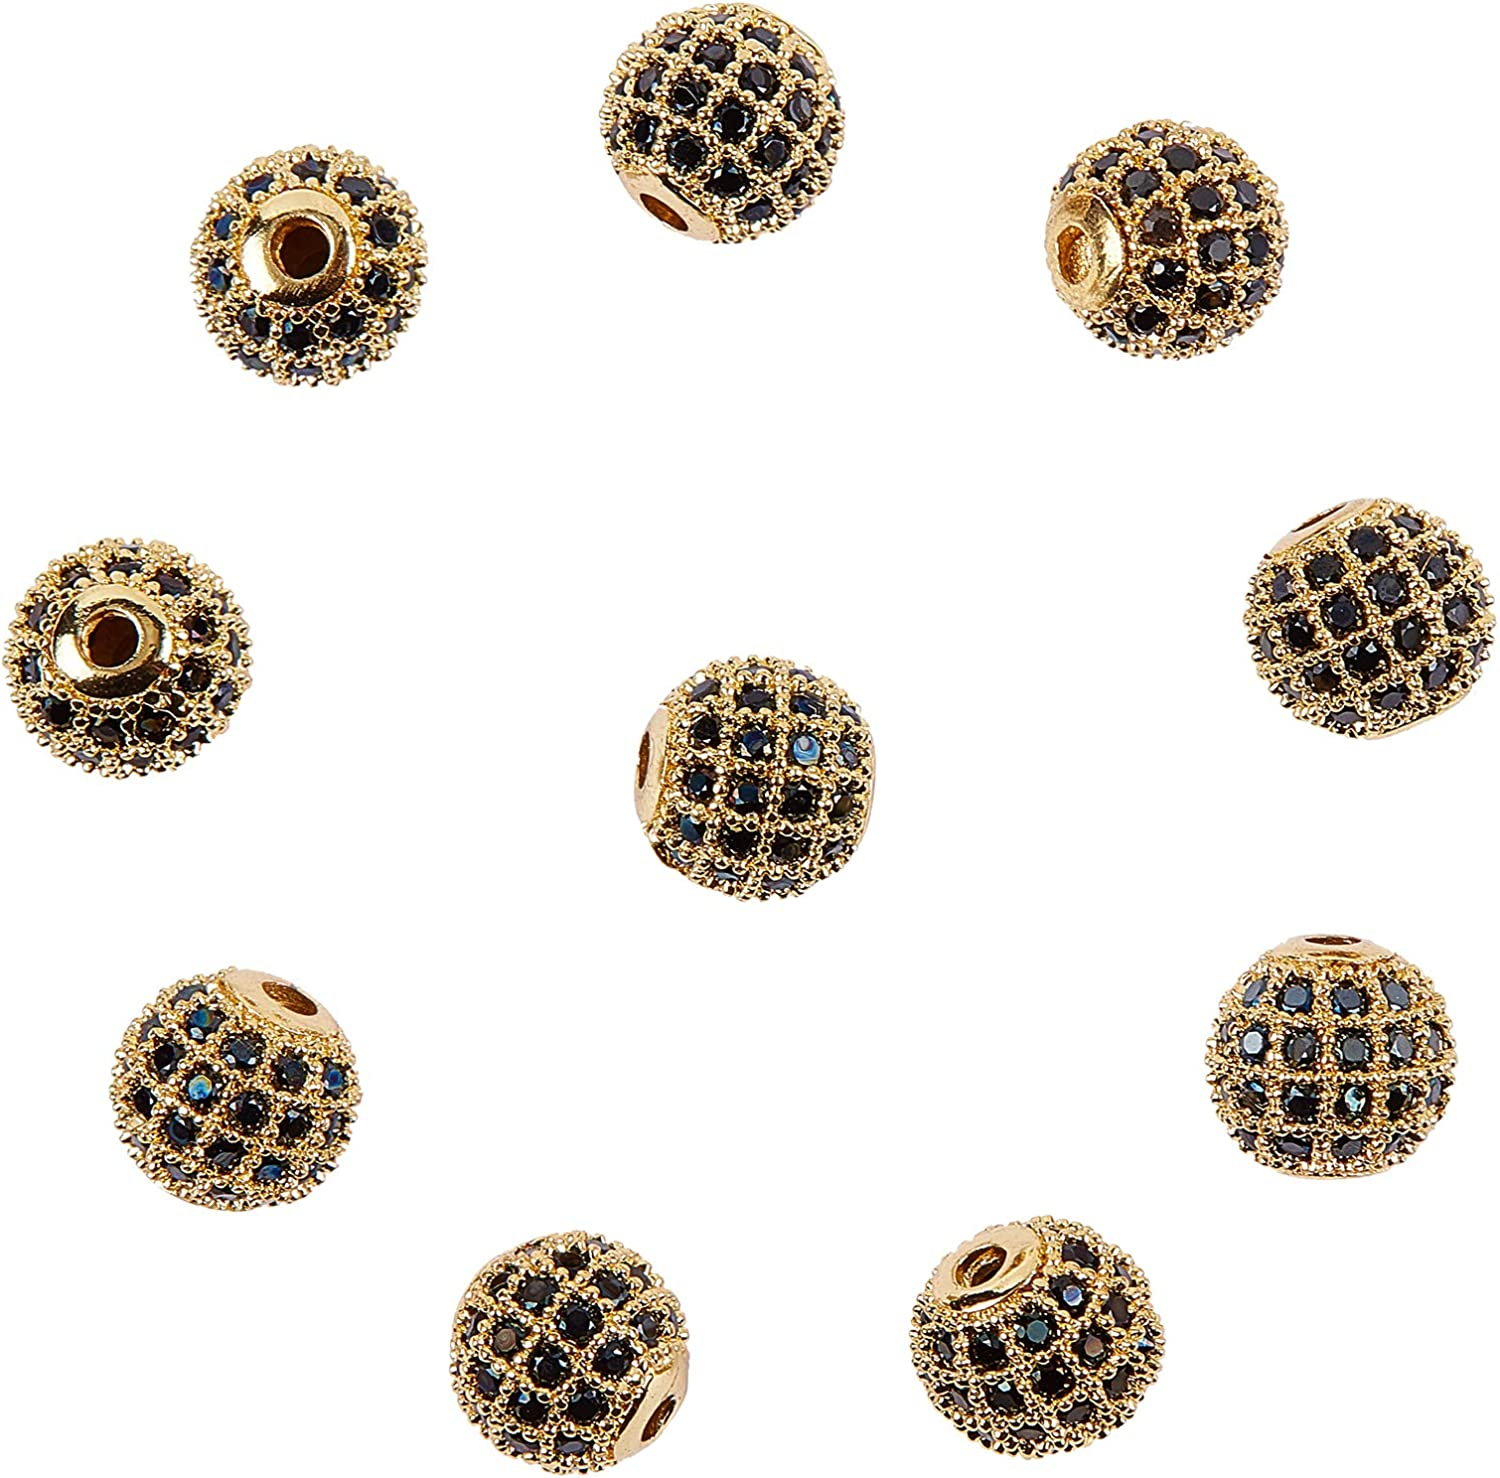 100Pcs New Arrival Lot Micro Pave Disco Crystal Shamballa Beads Bracelet Spacer